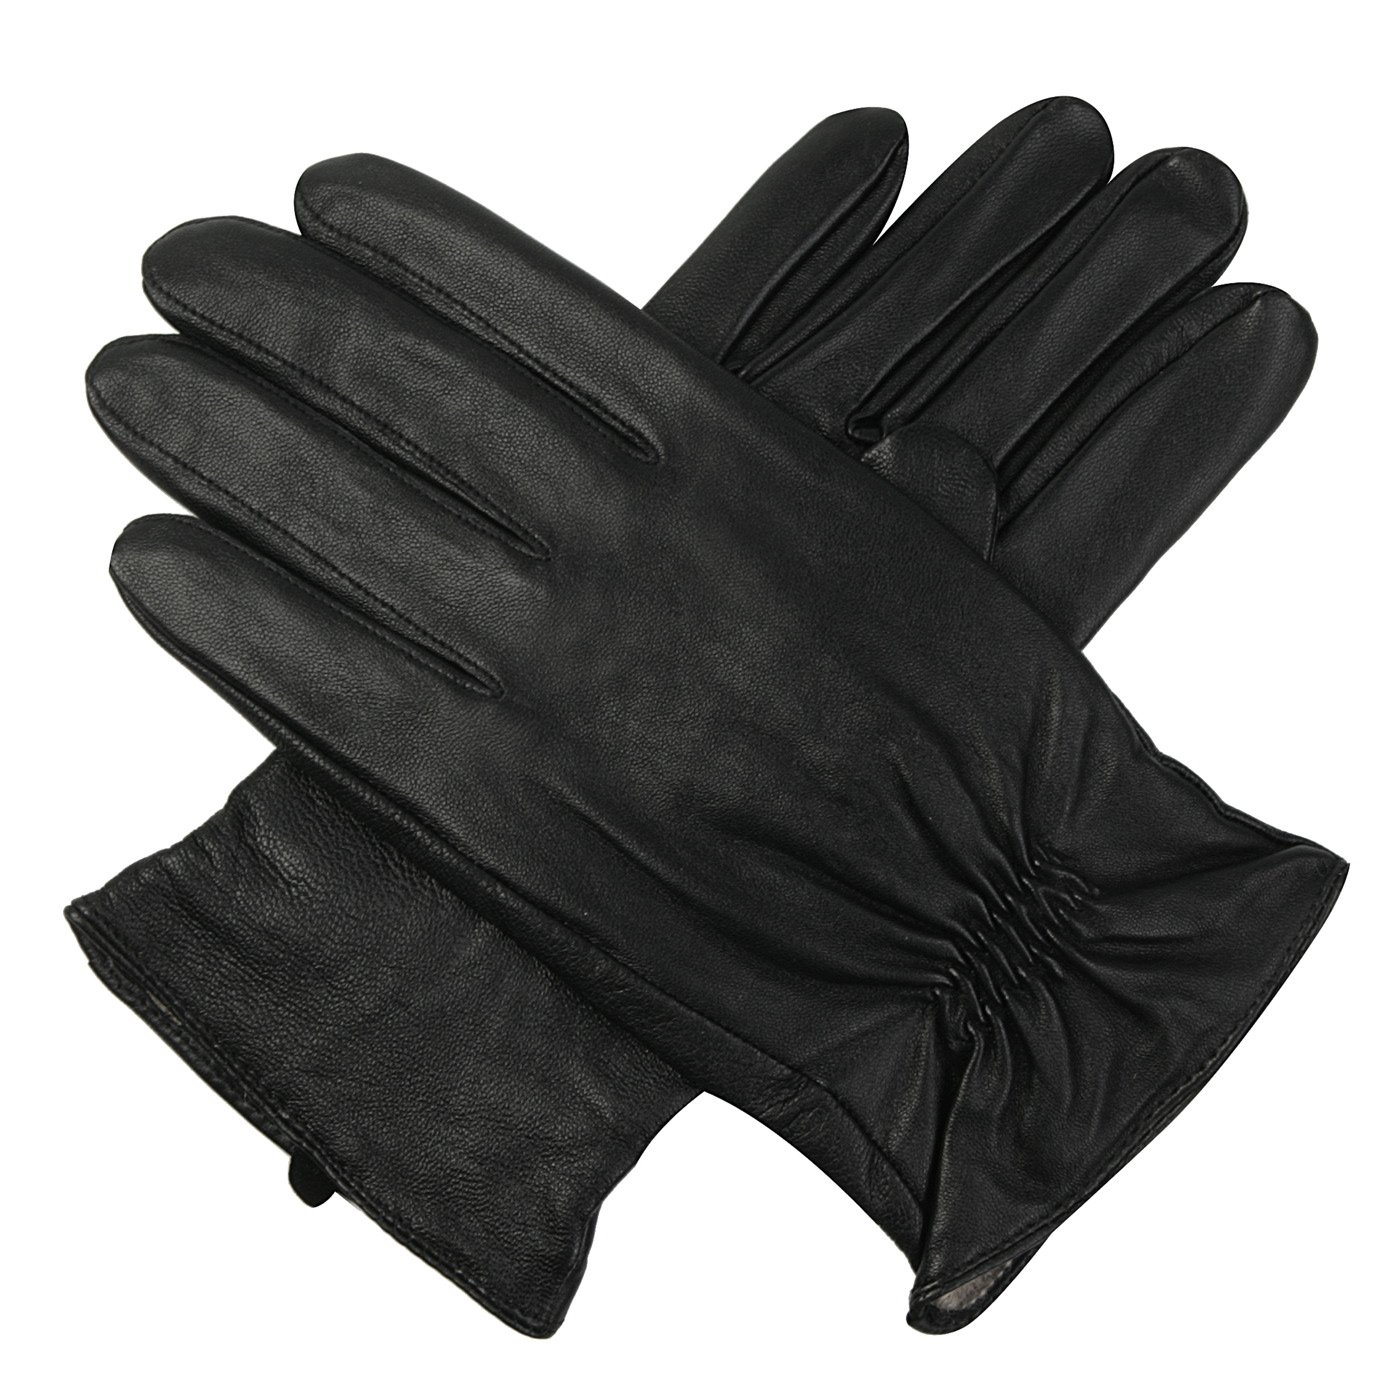 Luxury Lane Men's Cashmere Lined Lambskin Leather Gloves - Black S